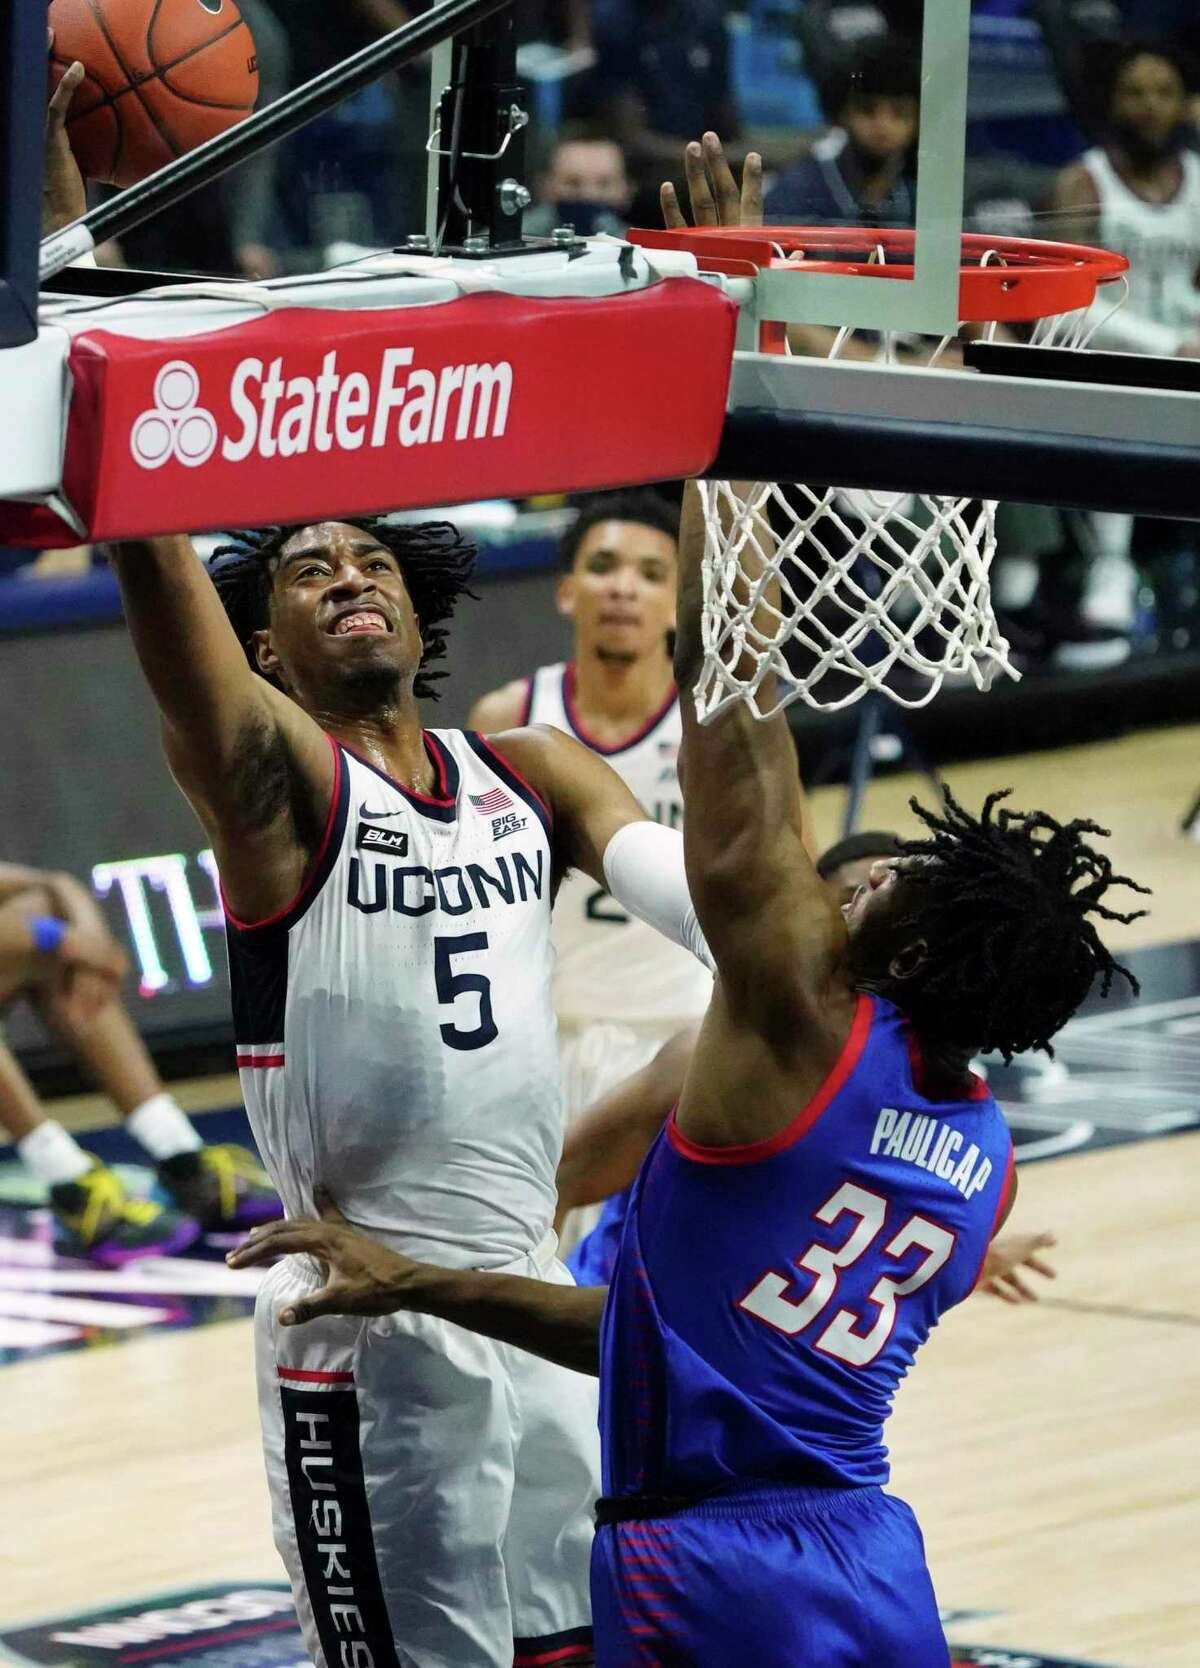 UConn forward Isaiah Whaley (5) shoots against DePaul forward Pauly Paulicap during the first half on Wednesday in Storrs.